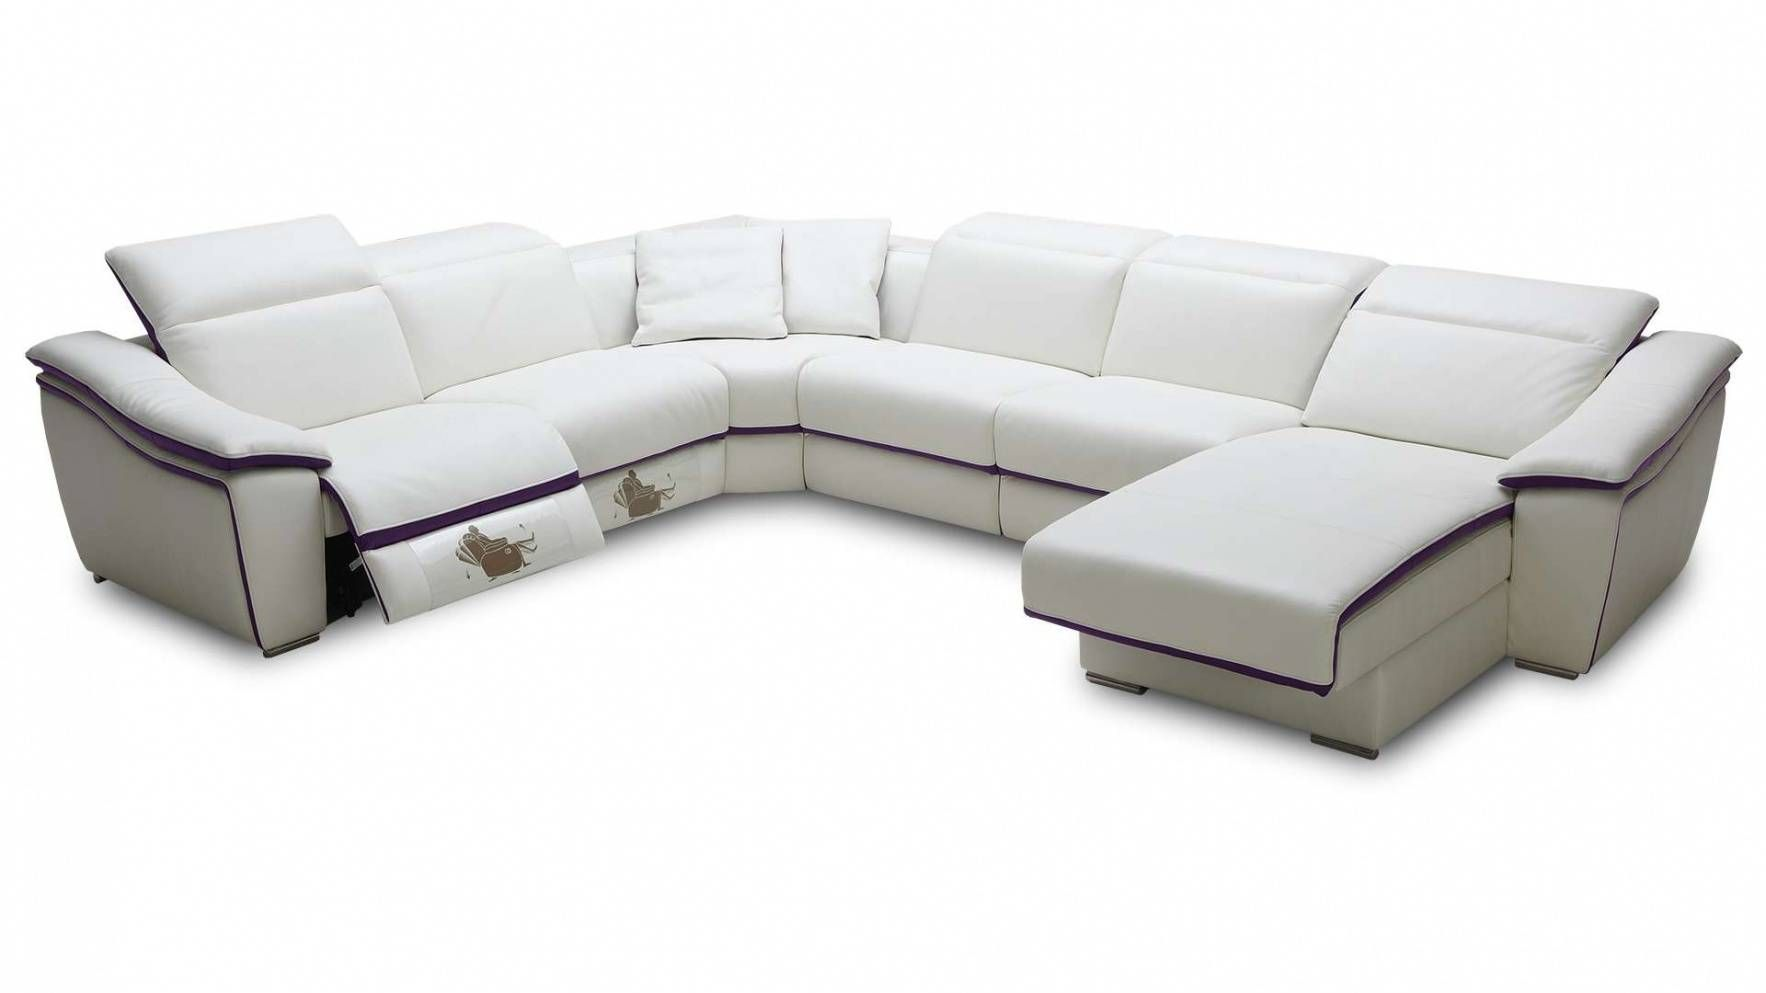 Nettoyer Canape En Cuir Canape Cuir En U Puredebrideur Nettoyer Canape Tissu Nettoyer Canape En Cuir Nettoyer E In 2020 Recliner Corner Sofa Sectional Leather Lounge